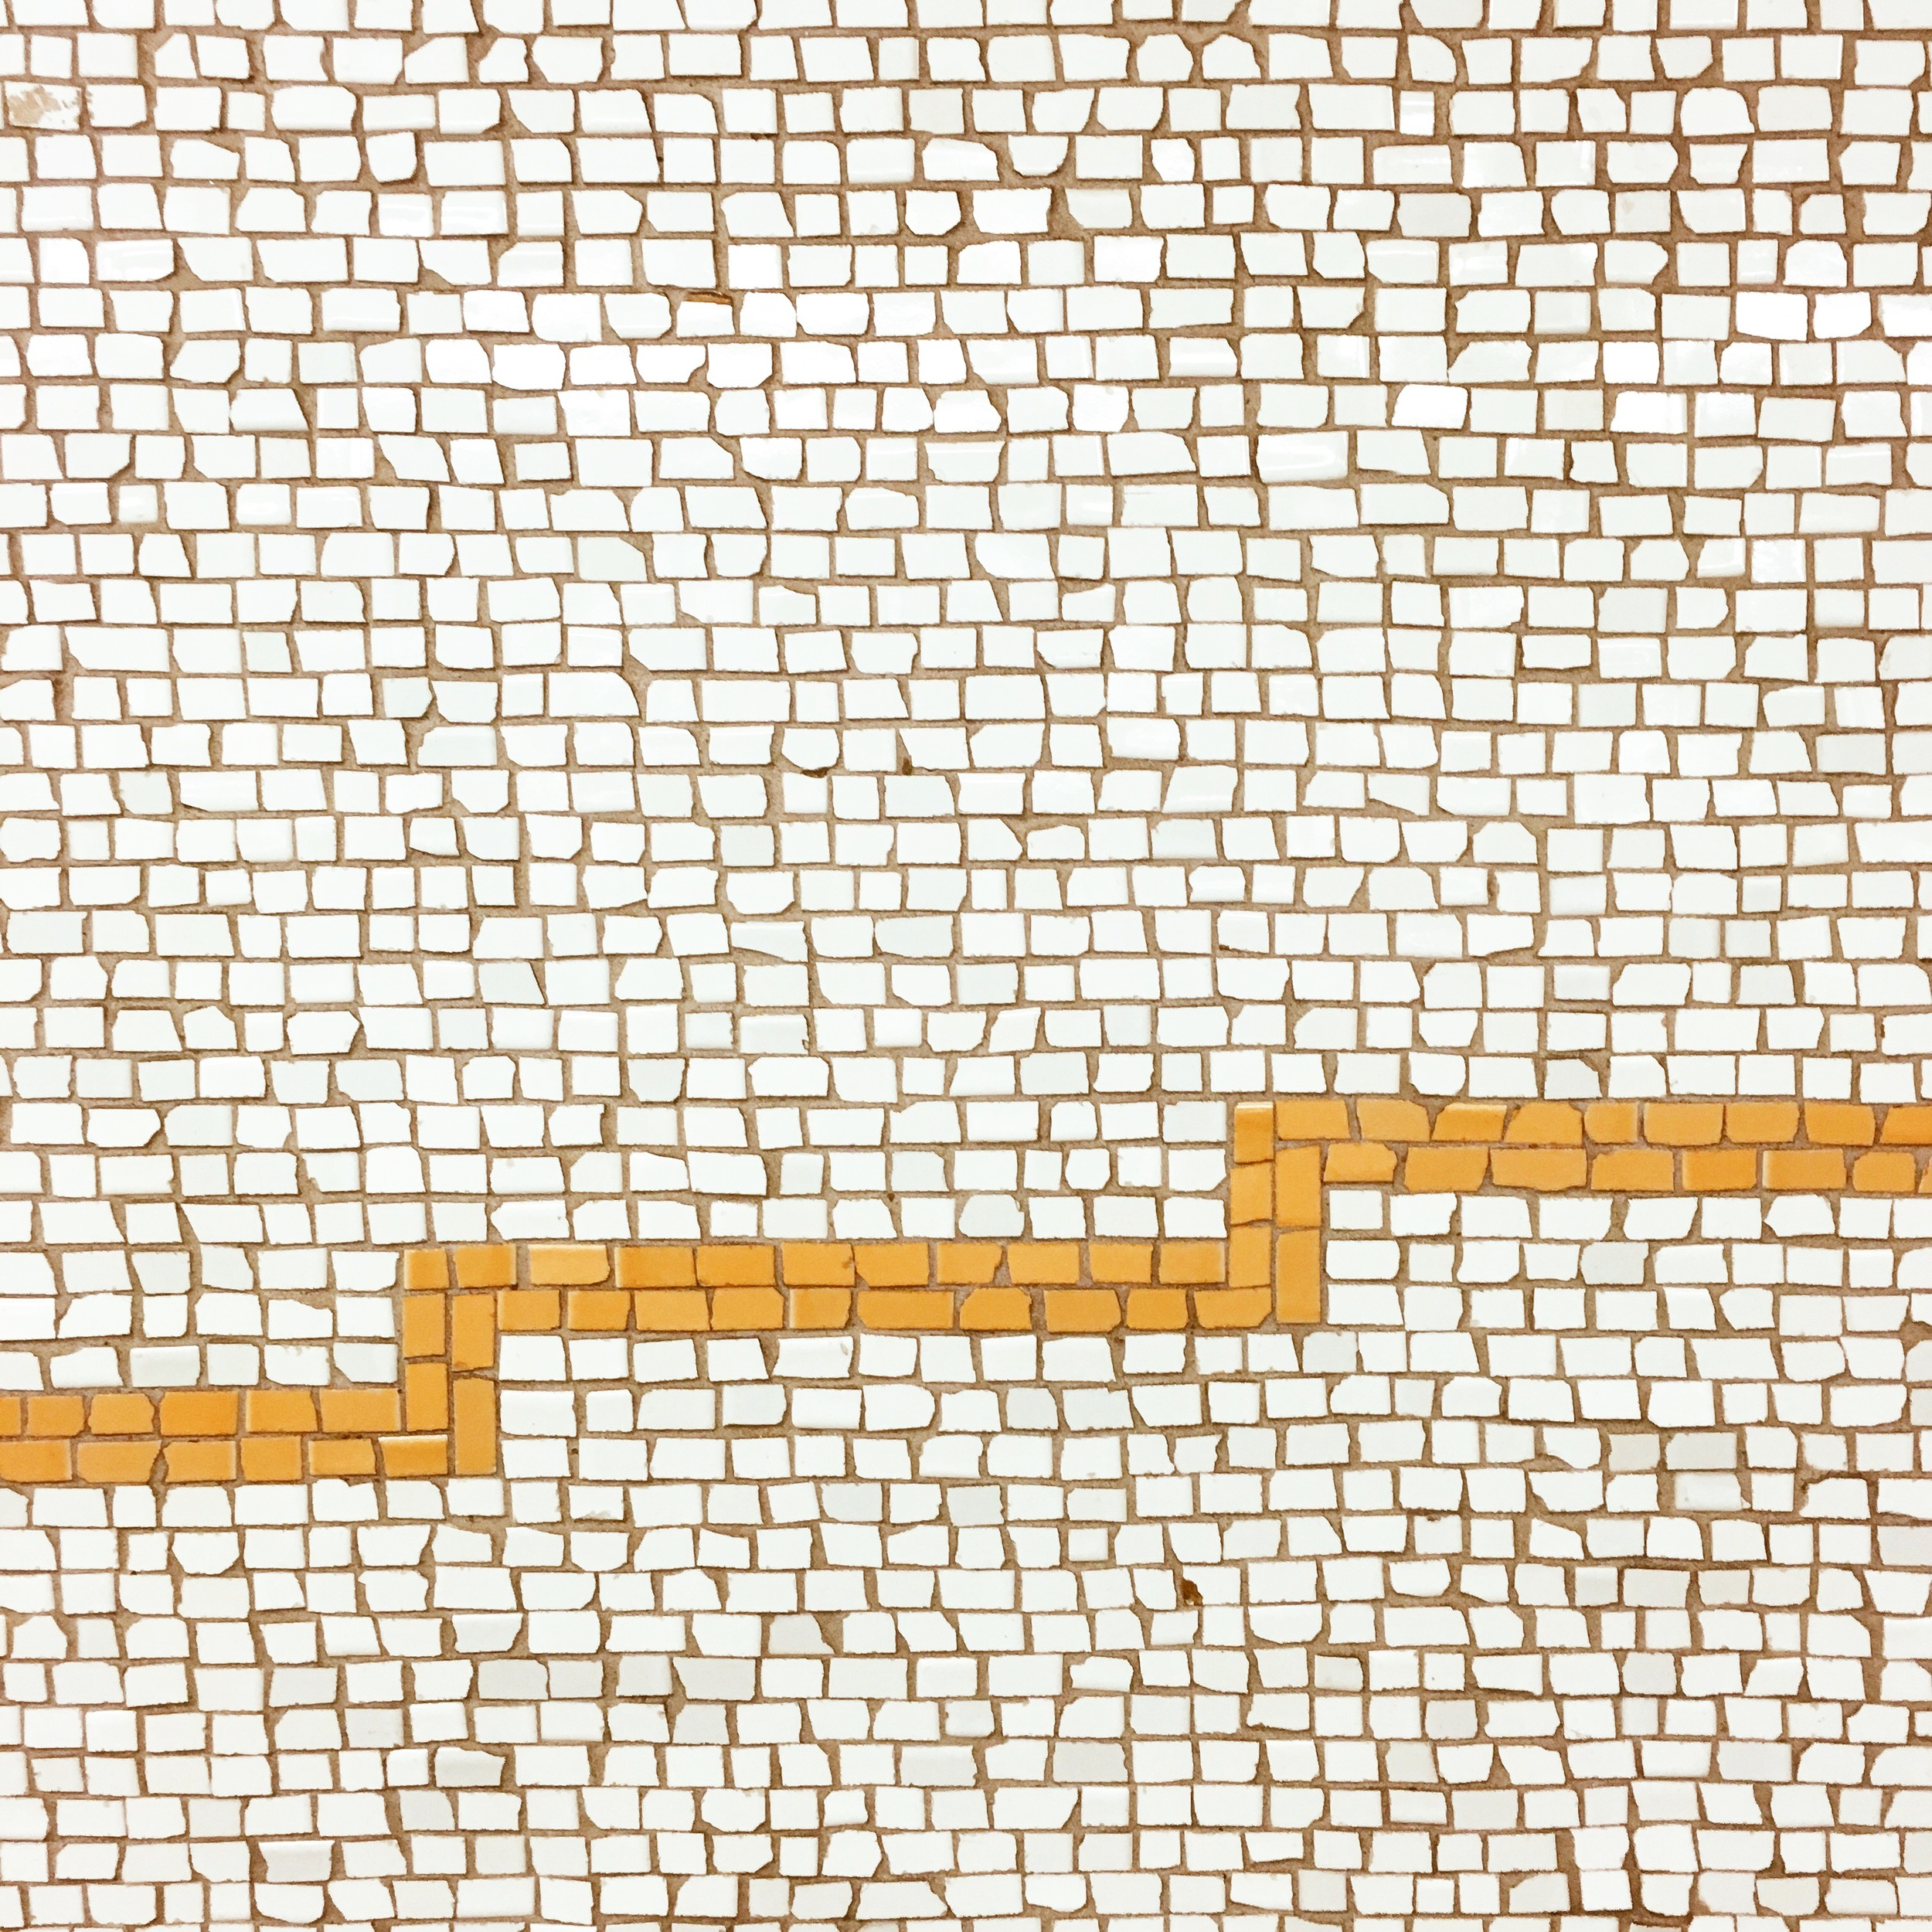 I'm always amazed by the tile work in the subway and it's even more brilliant when it's on the way home from work!